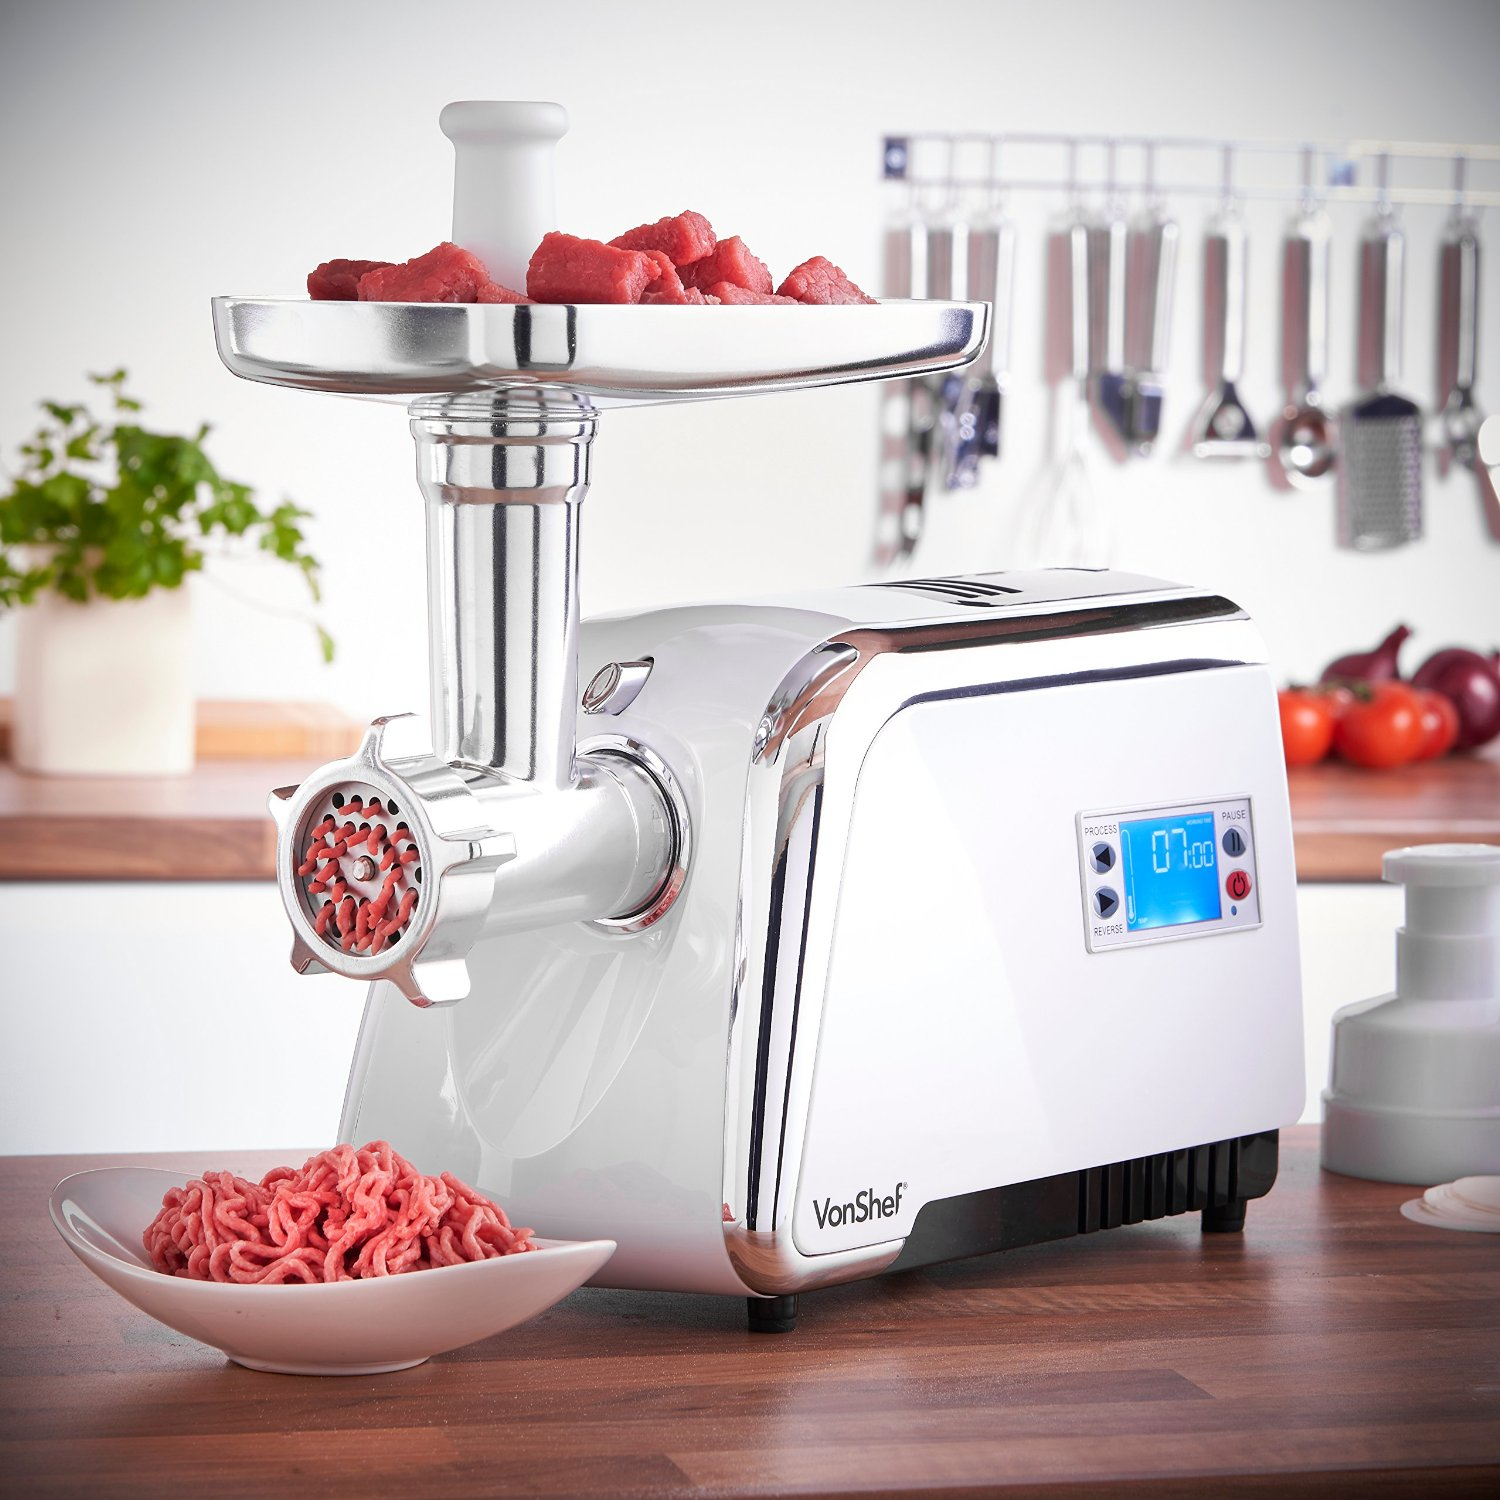 VonShef Digital Electric Stainless Steel Meat Grinder Mincer Sausage Maker